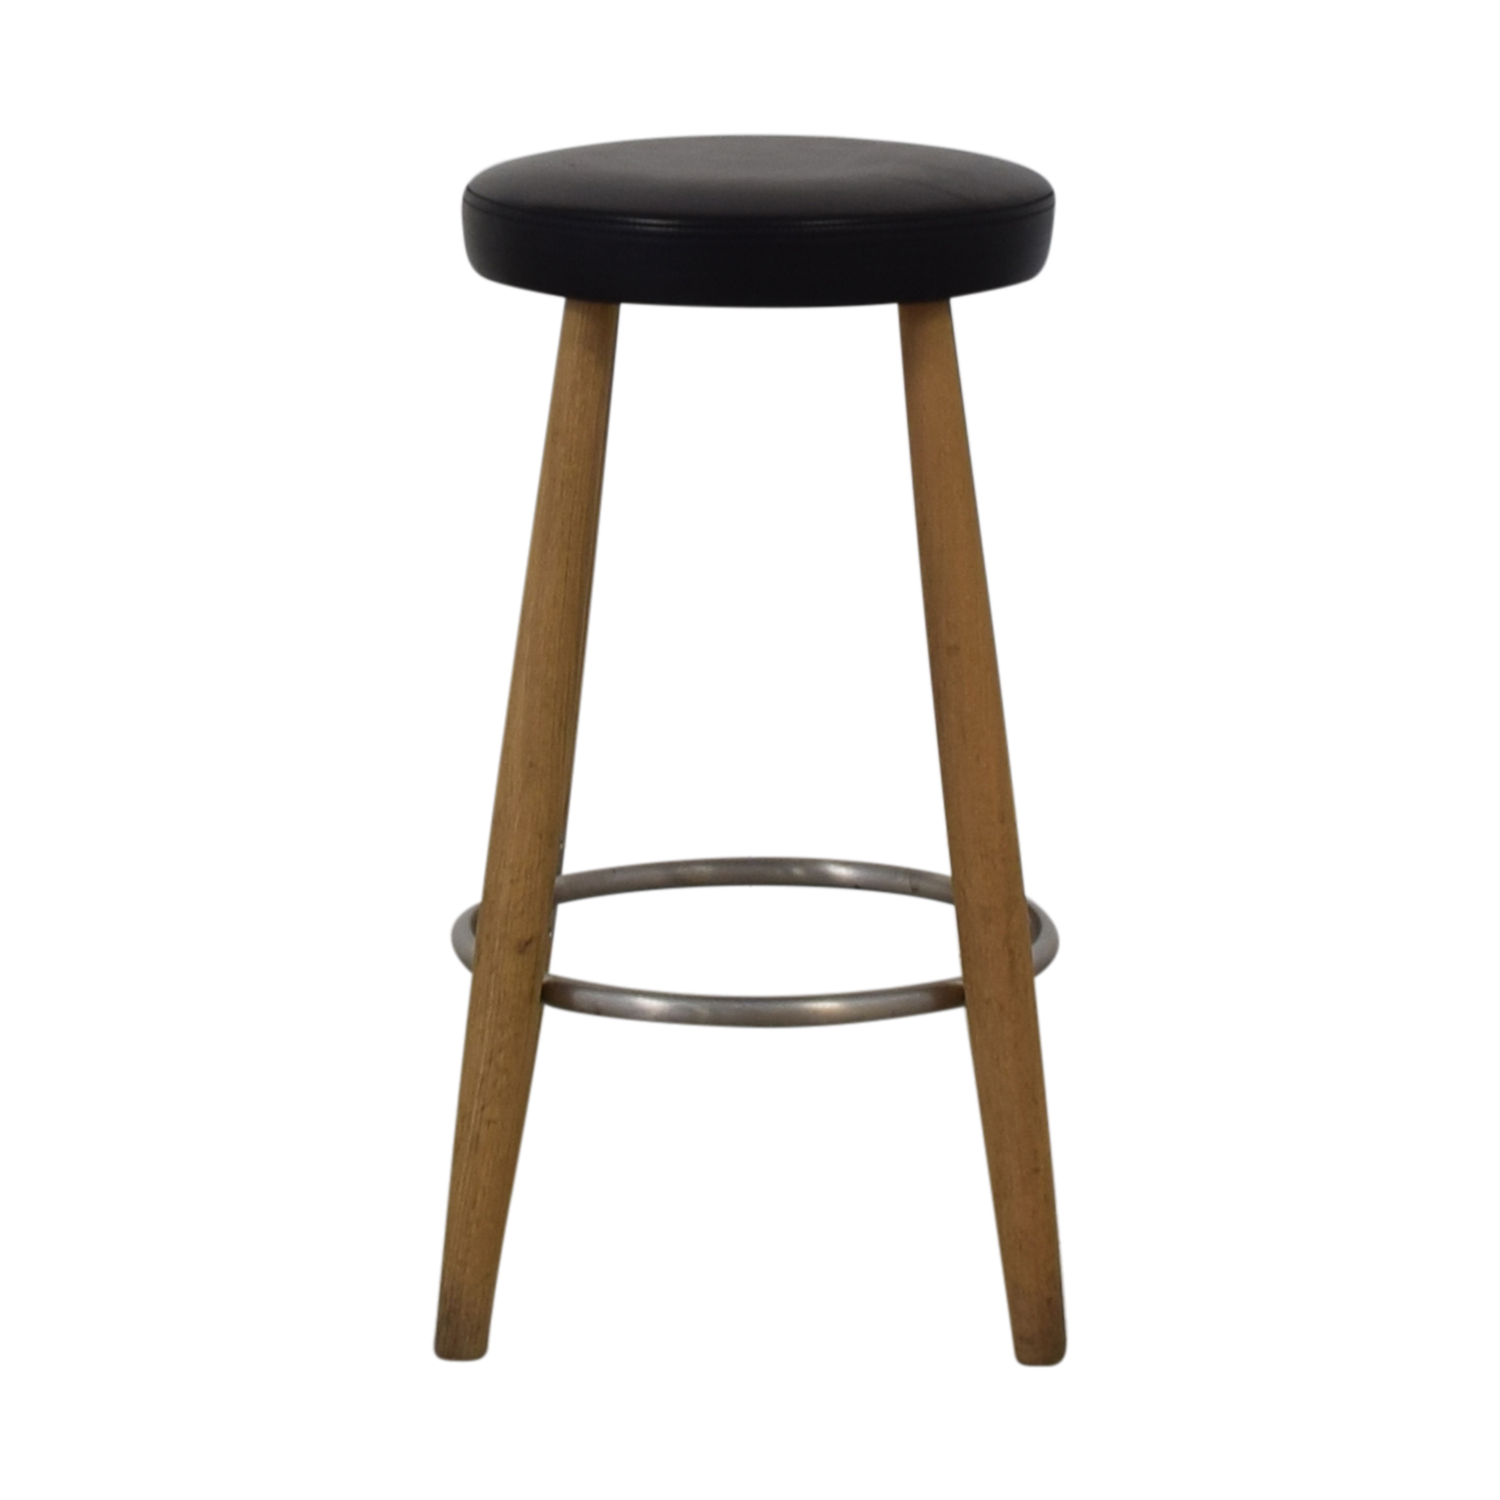 Carl Hansen & Son Carl Hansen & Son Wegner CH58 Counter Stool second hand